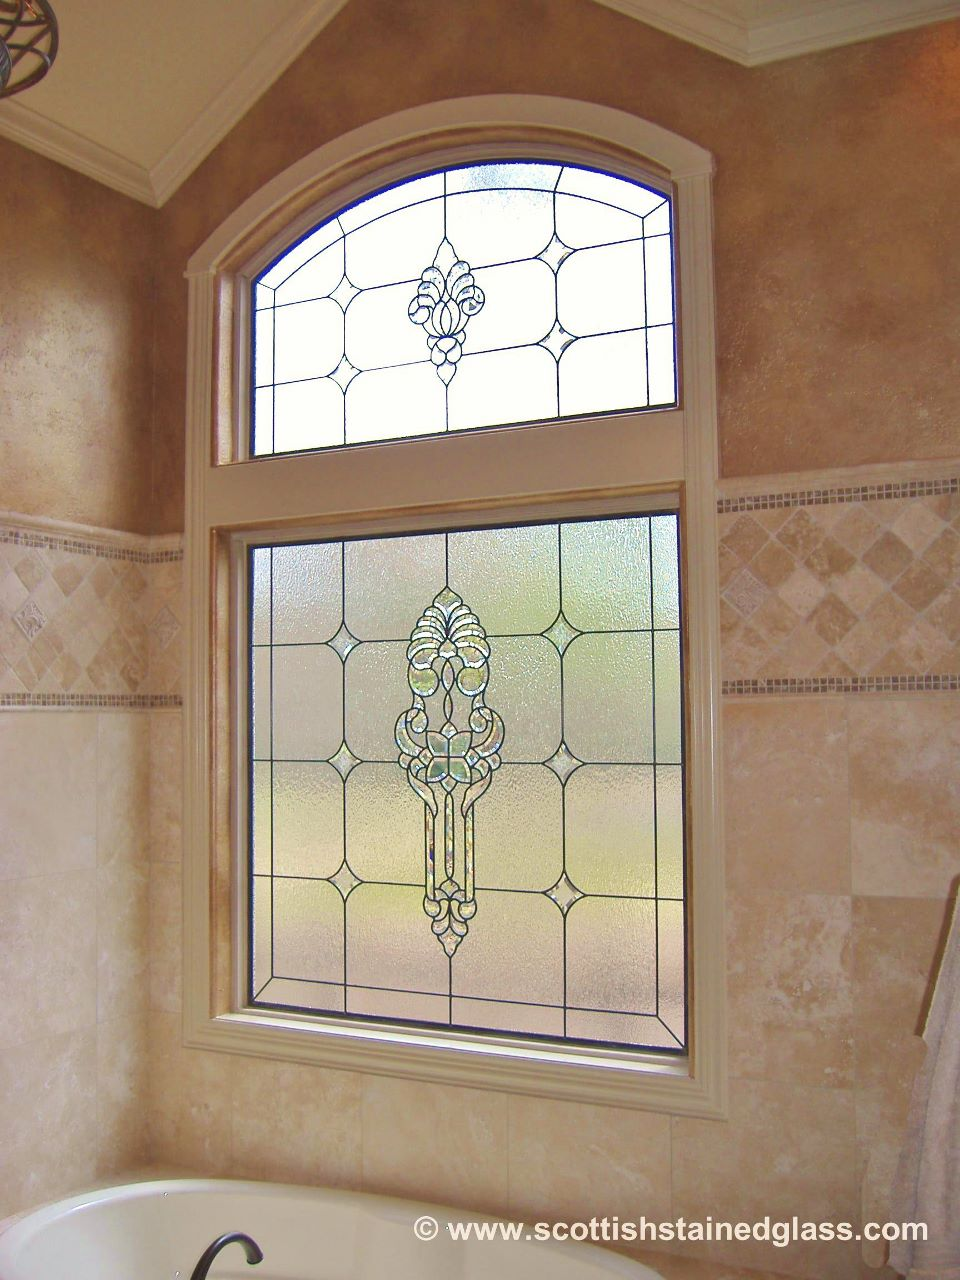 Best Of Stained Glass For Bathroom Window Wallpaper Bathroom Stained Glass Bathroom Window